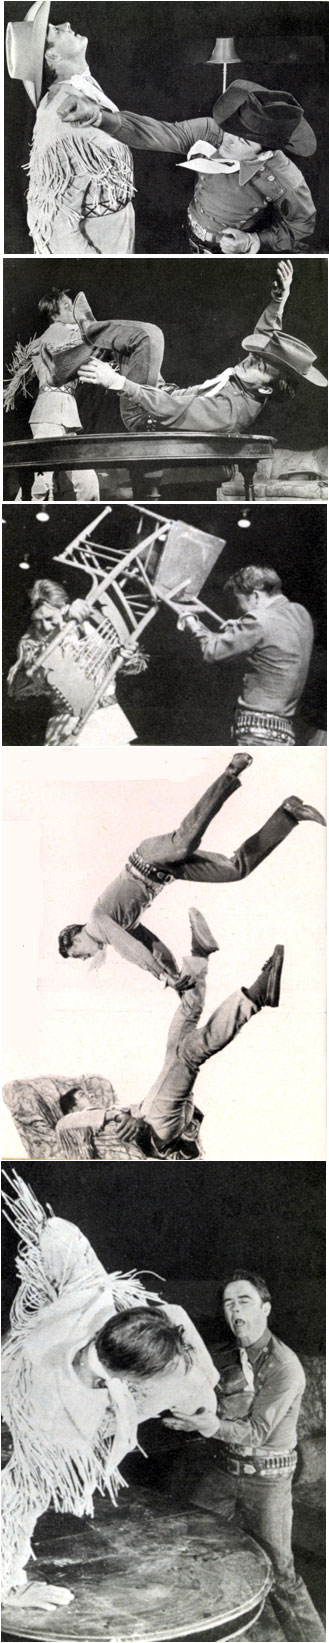 "For their 1953 rodeo appearances, Jock Mahoney as the ""Range Rider"" and Dick Jones as Dick West staged a 10 minute ""movie fight"" during which they slugged it out with fists and splintering chairs."